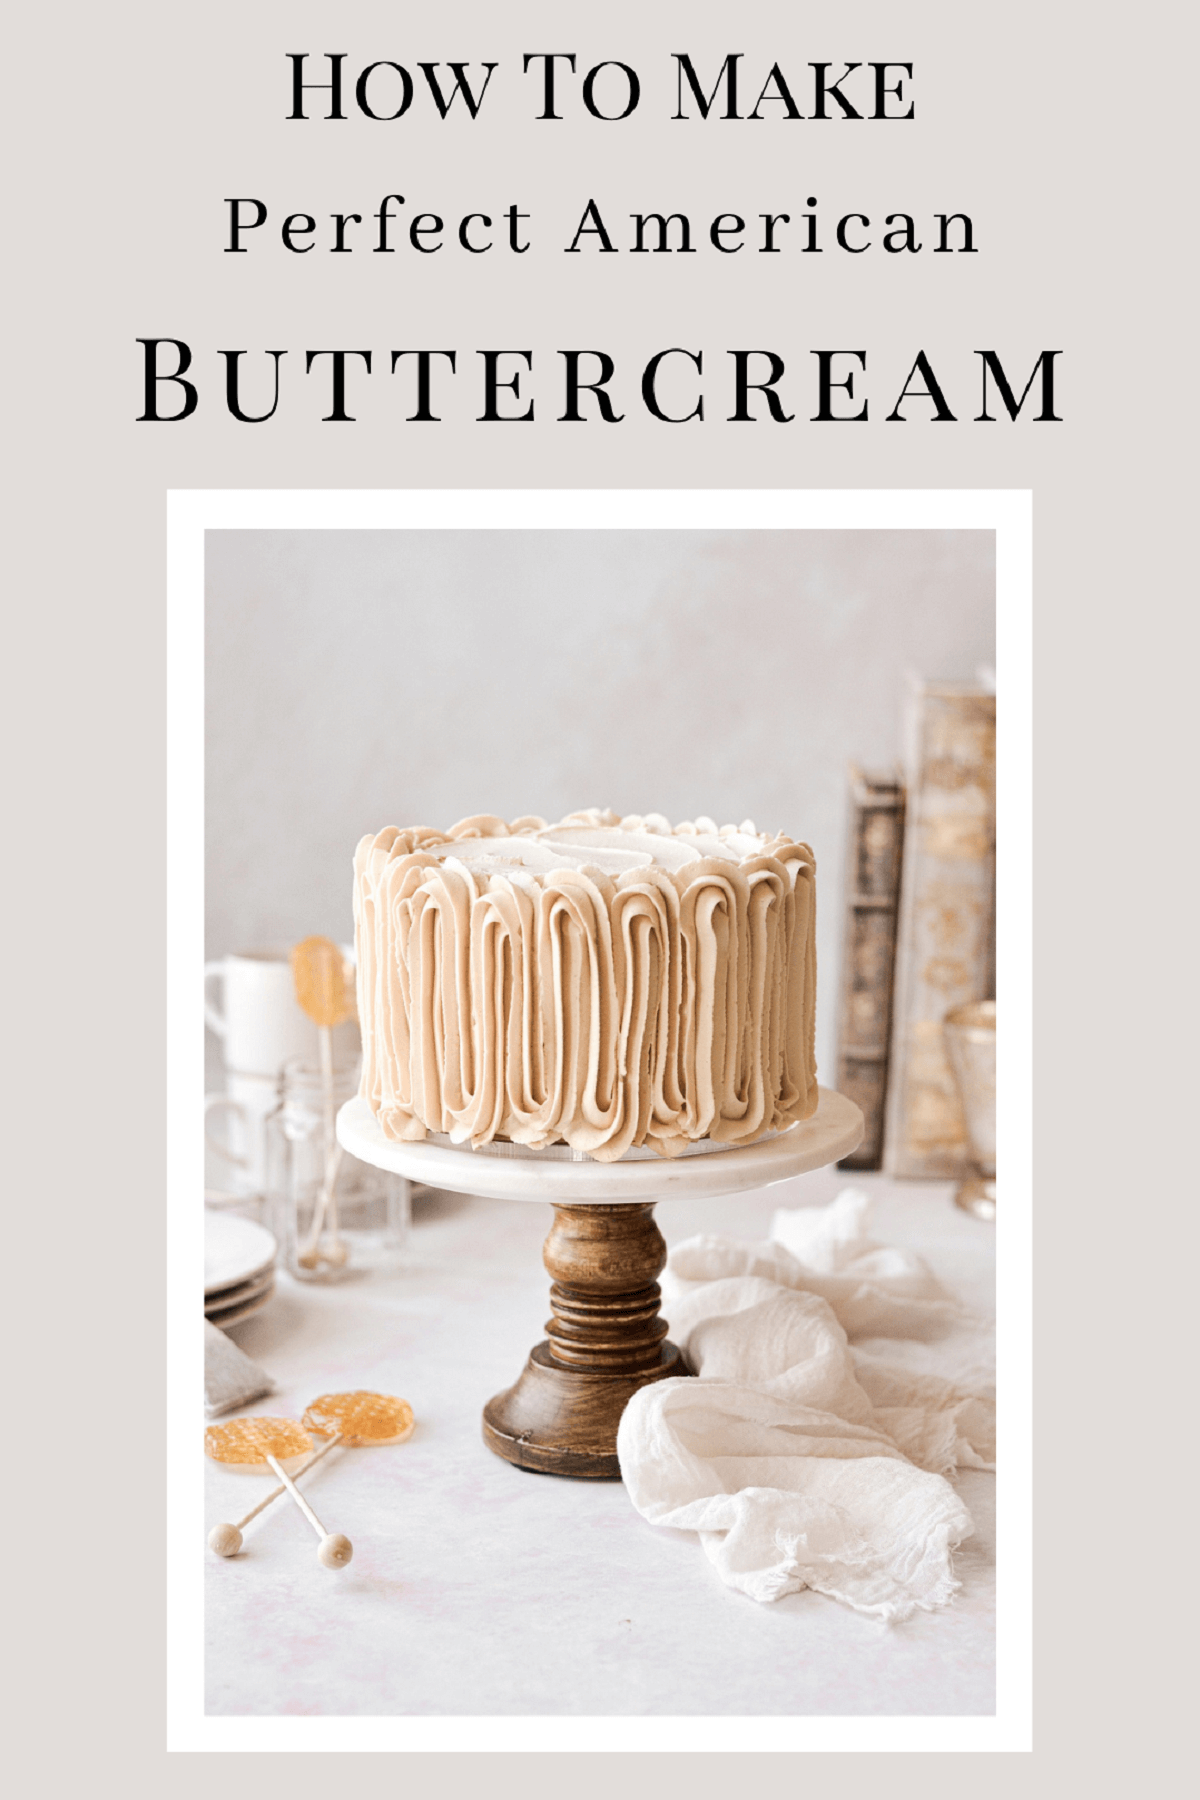 A graphic on how to make perfect American buttercream.